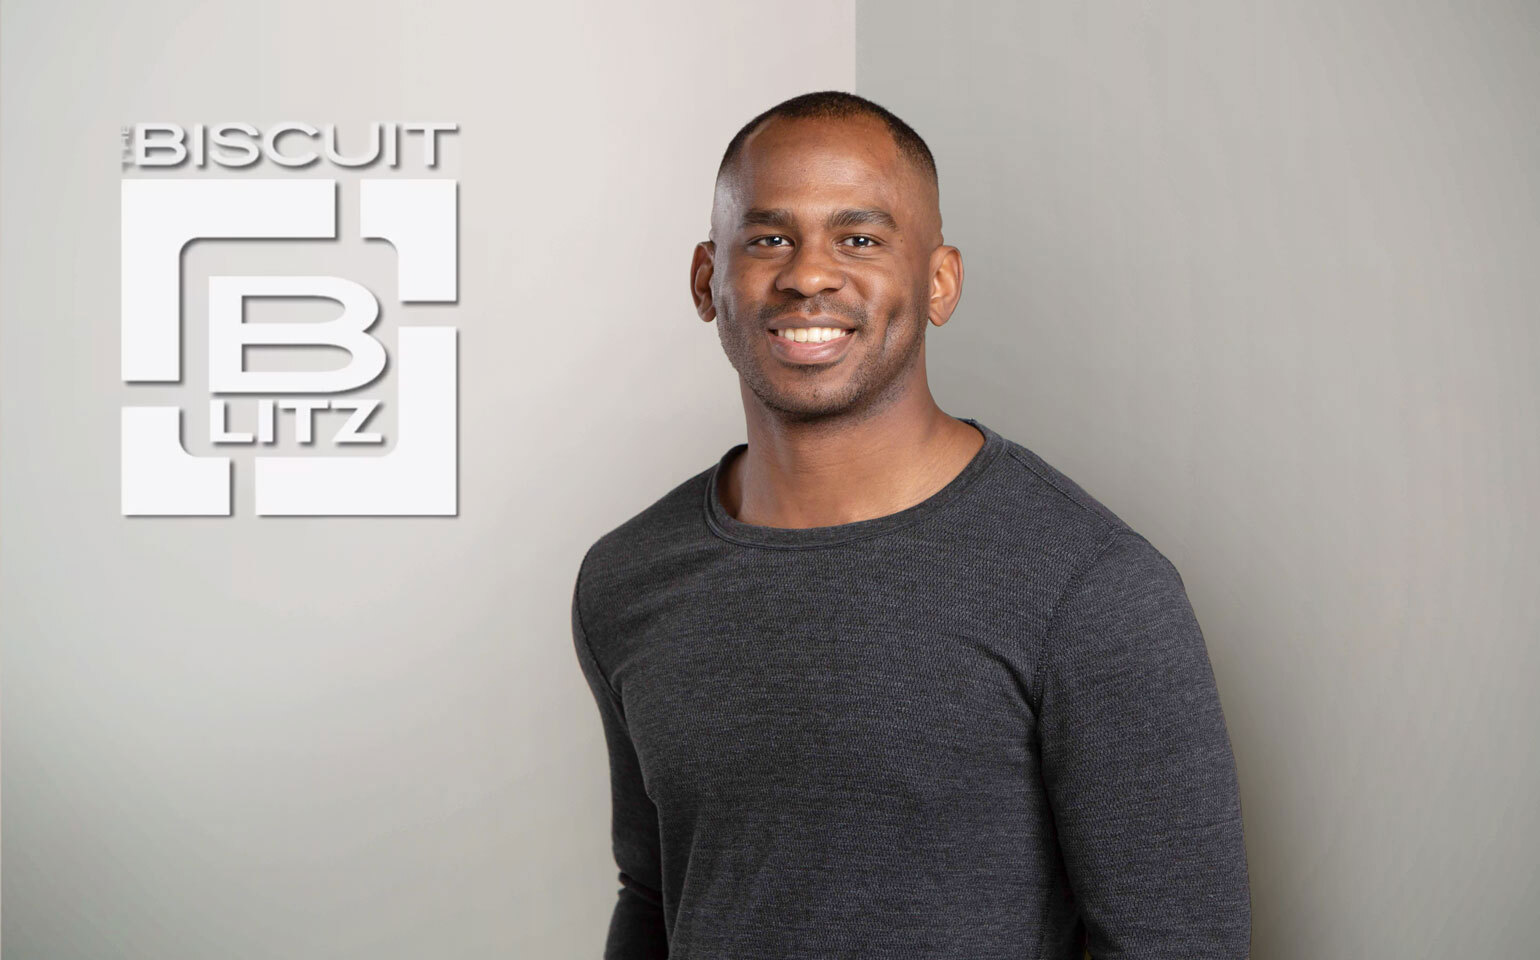 Chris Cureton in front of biscuit blitz logo